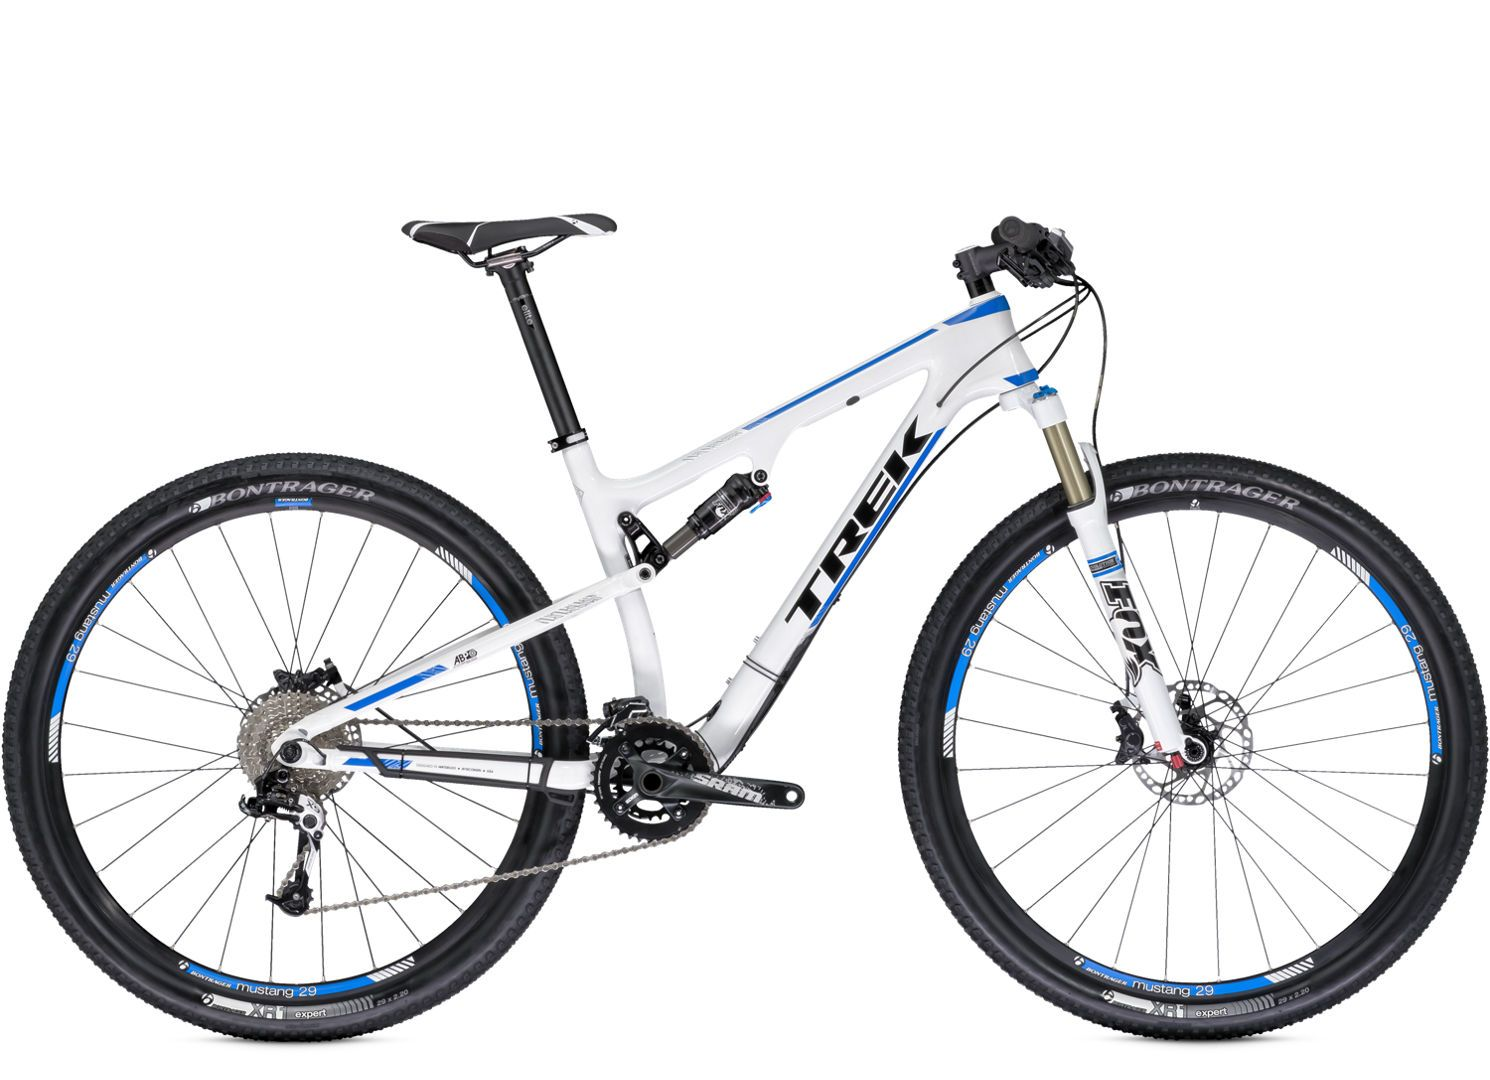 Superfly Fs 9 7 Sl Trek Bicycle Trek Bikes Trek Bicycle Cross Country Mountain Bike